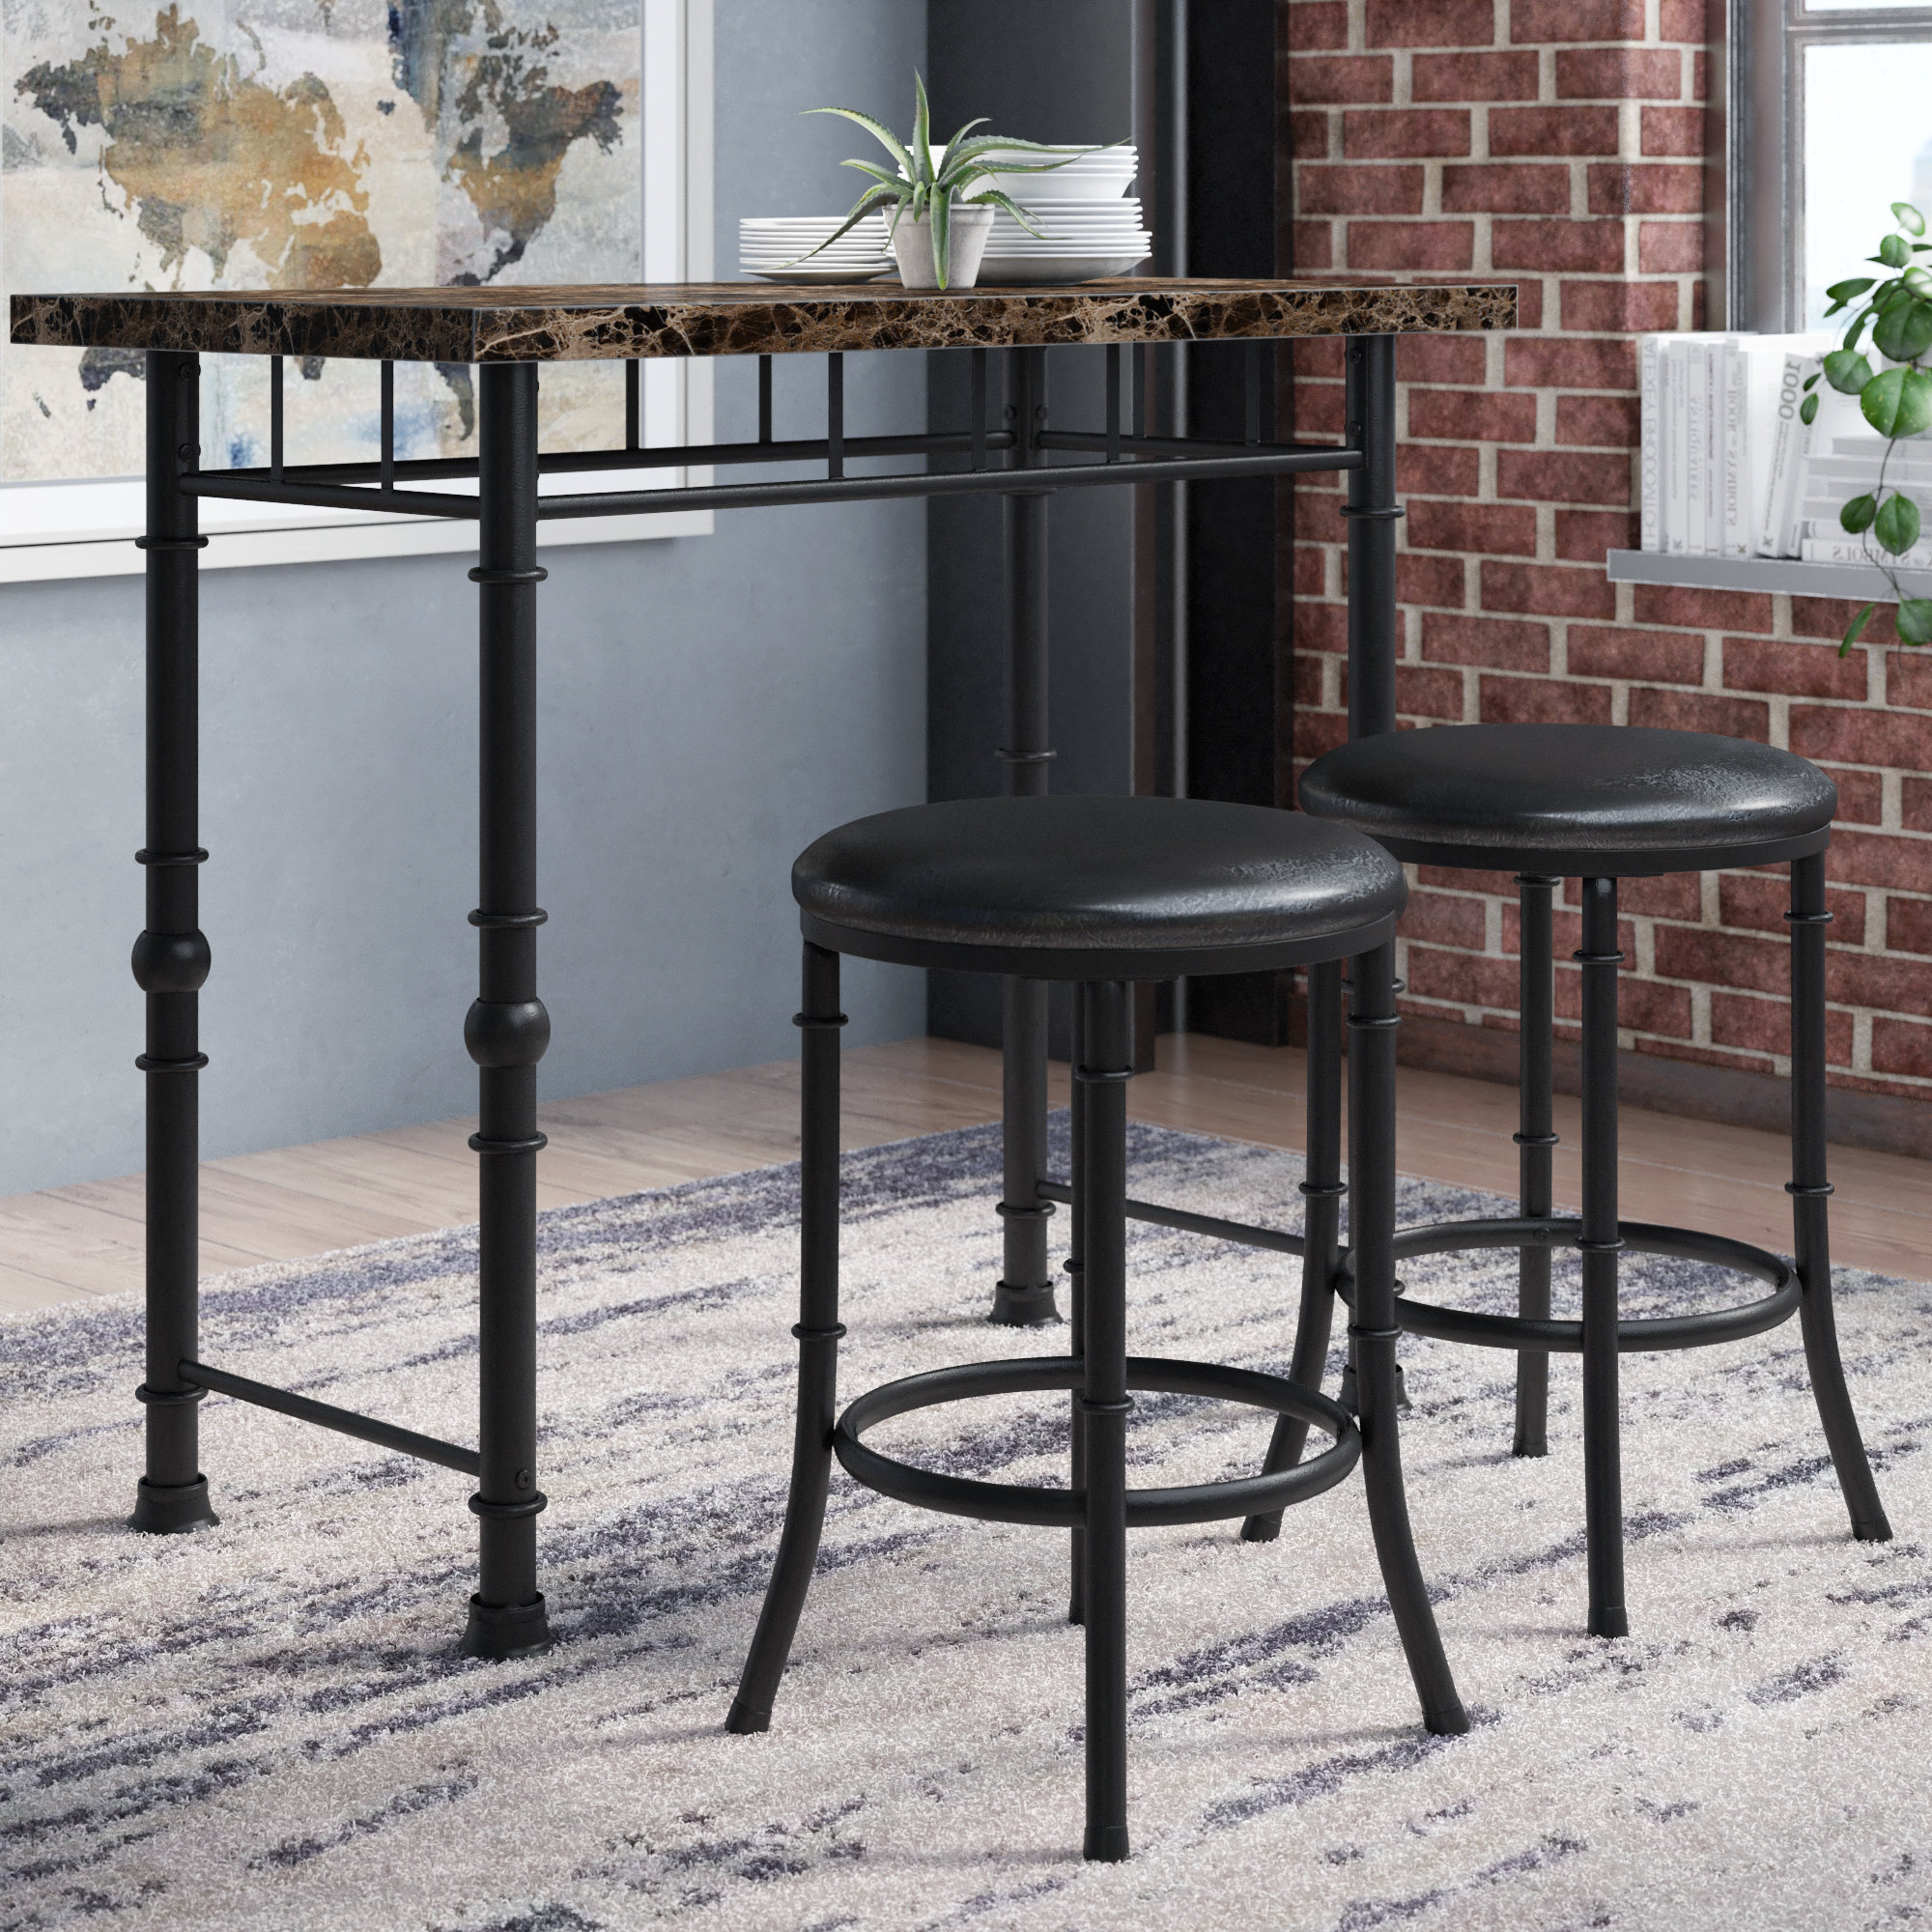 Wallflower 3 Piece Dining Sets Intended For Well Known Giles 3 Piece Dining Set (View 15 of 20)